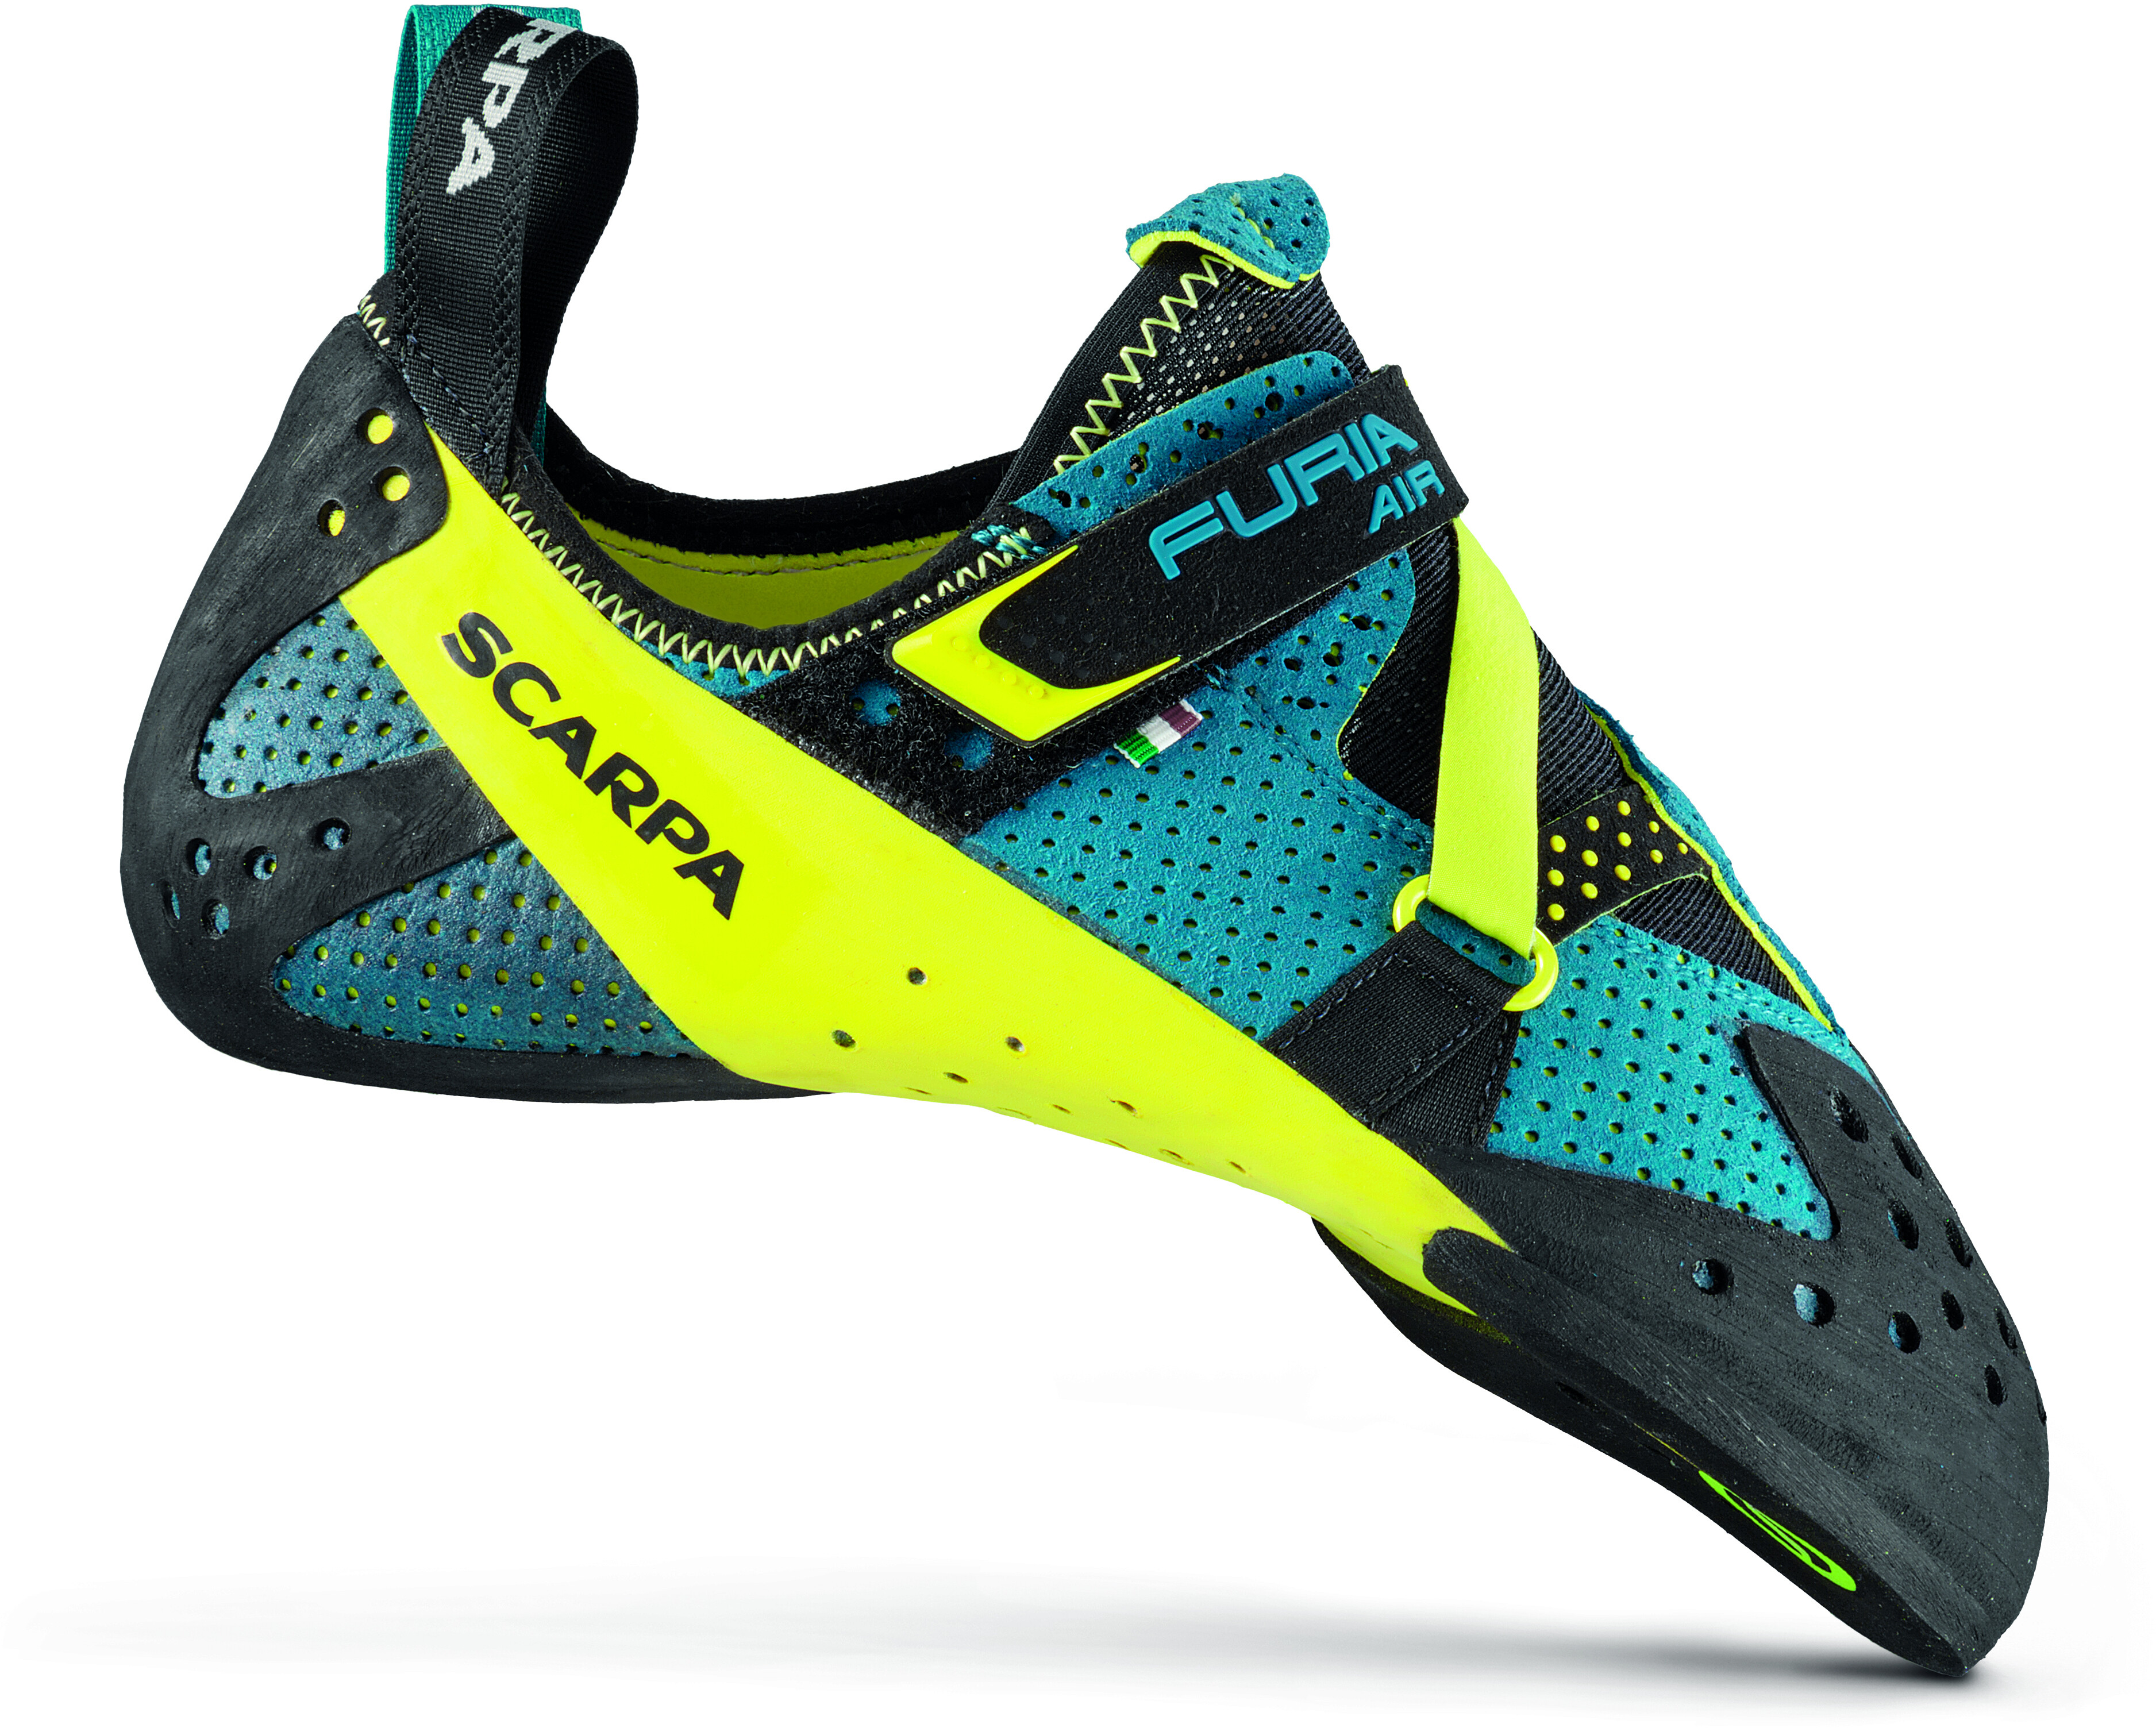 Scarpa Furia Air Buty Wspinaczkowe Baltic Blue Yellow Sklep Addnature Pl